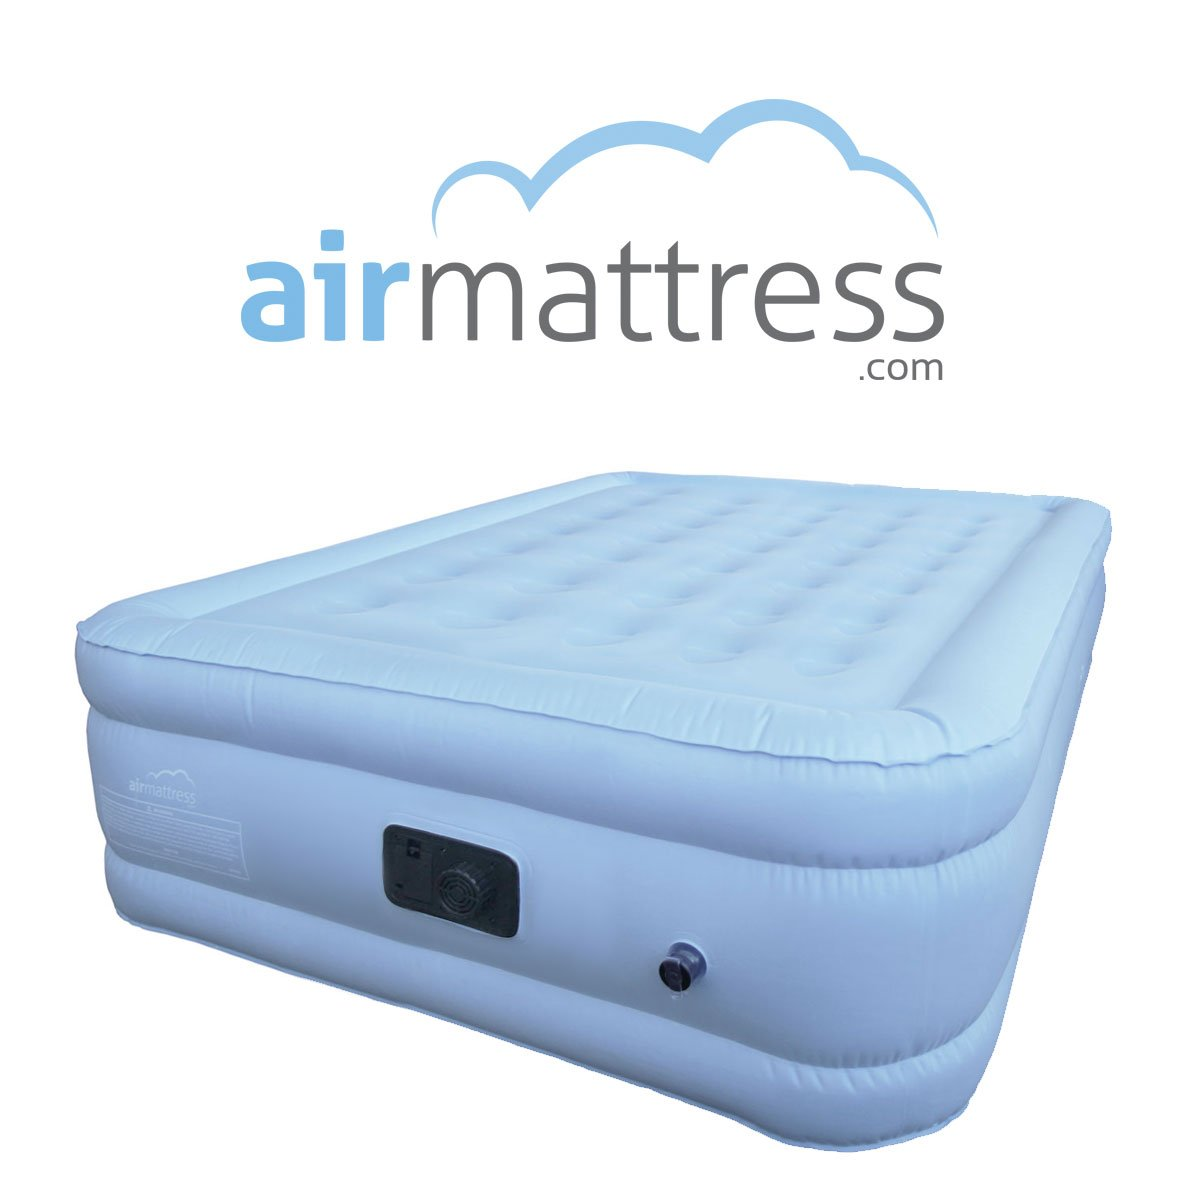 product beds store bed inflatable mattress langley furniture air web